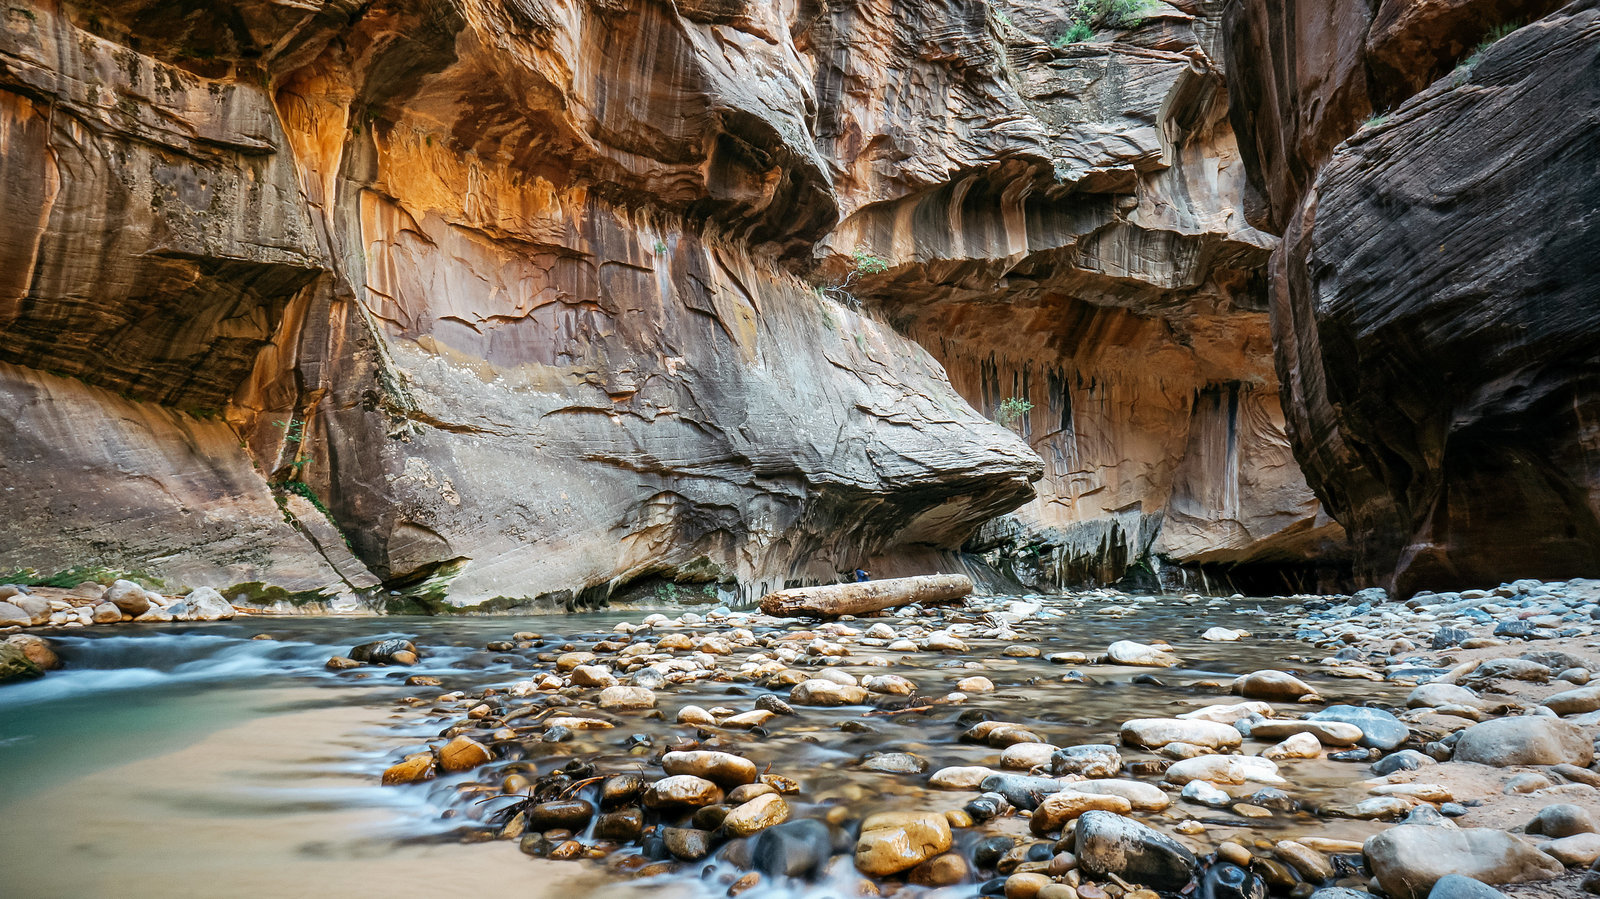 Sasha_Reiko_Photography_Travel_Utah_Arches_Canyon_Lands_Zion_Grand_Canyon-55